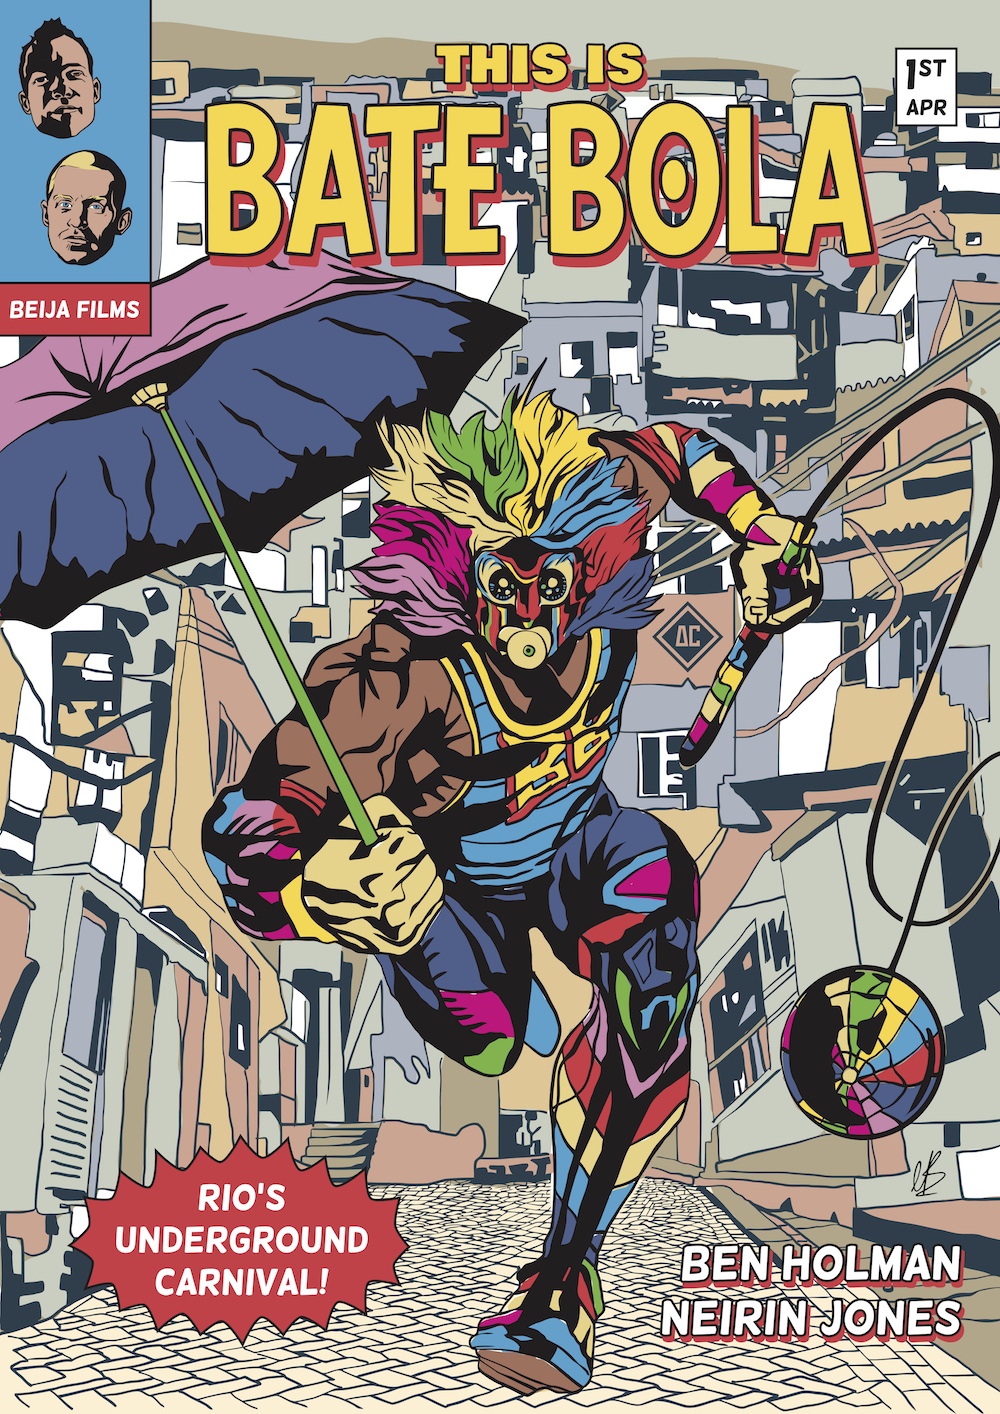 bate-bola-comic-cover V2.jpg